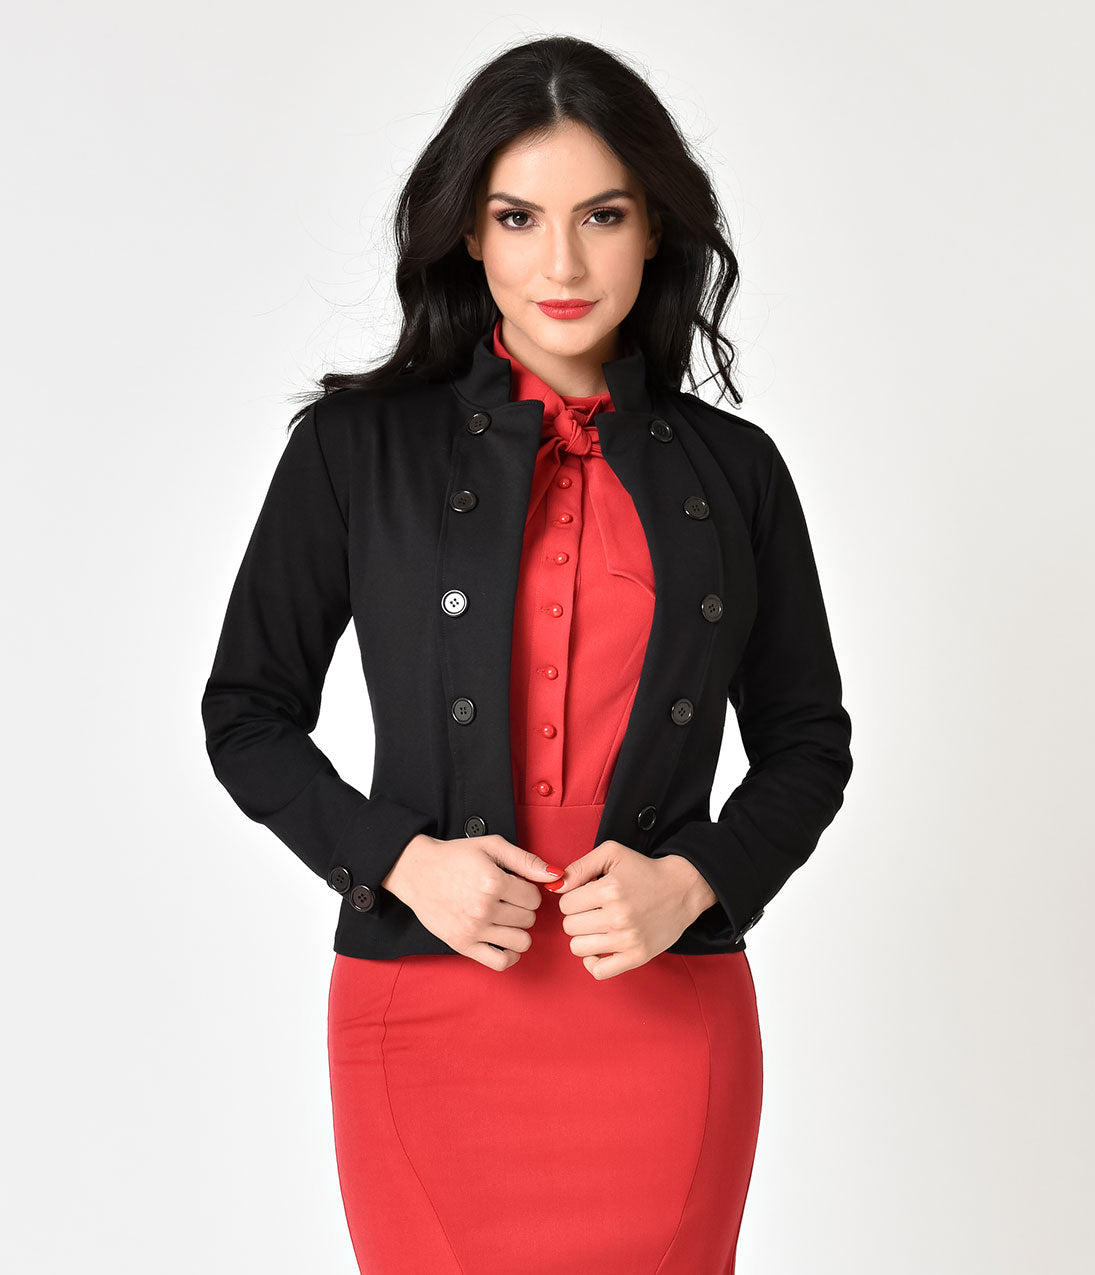 1950s Jackets and Coats | Swing, Pin Up, Rockabilly Vintage Style Black Stand Collar Jacket $68.00 AT vintagedancer.com